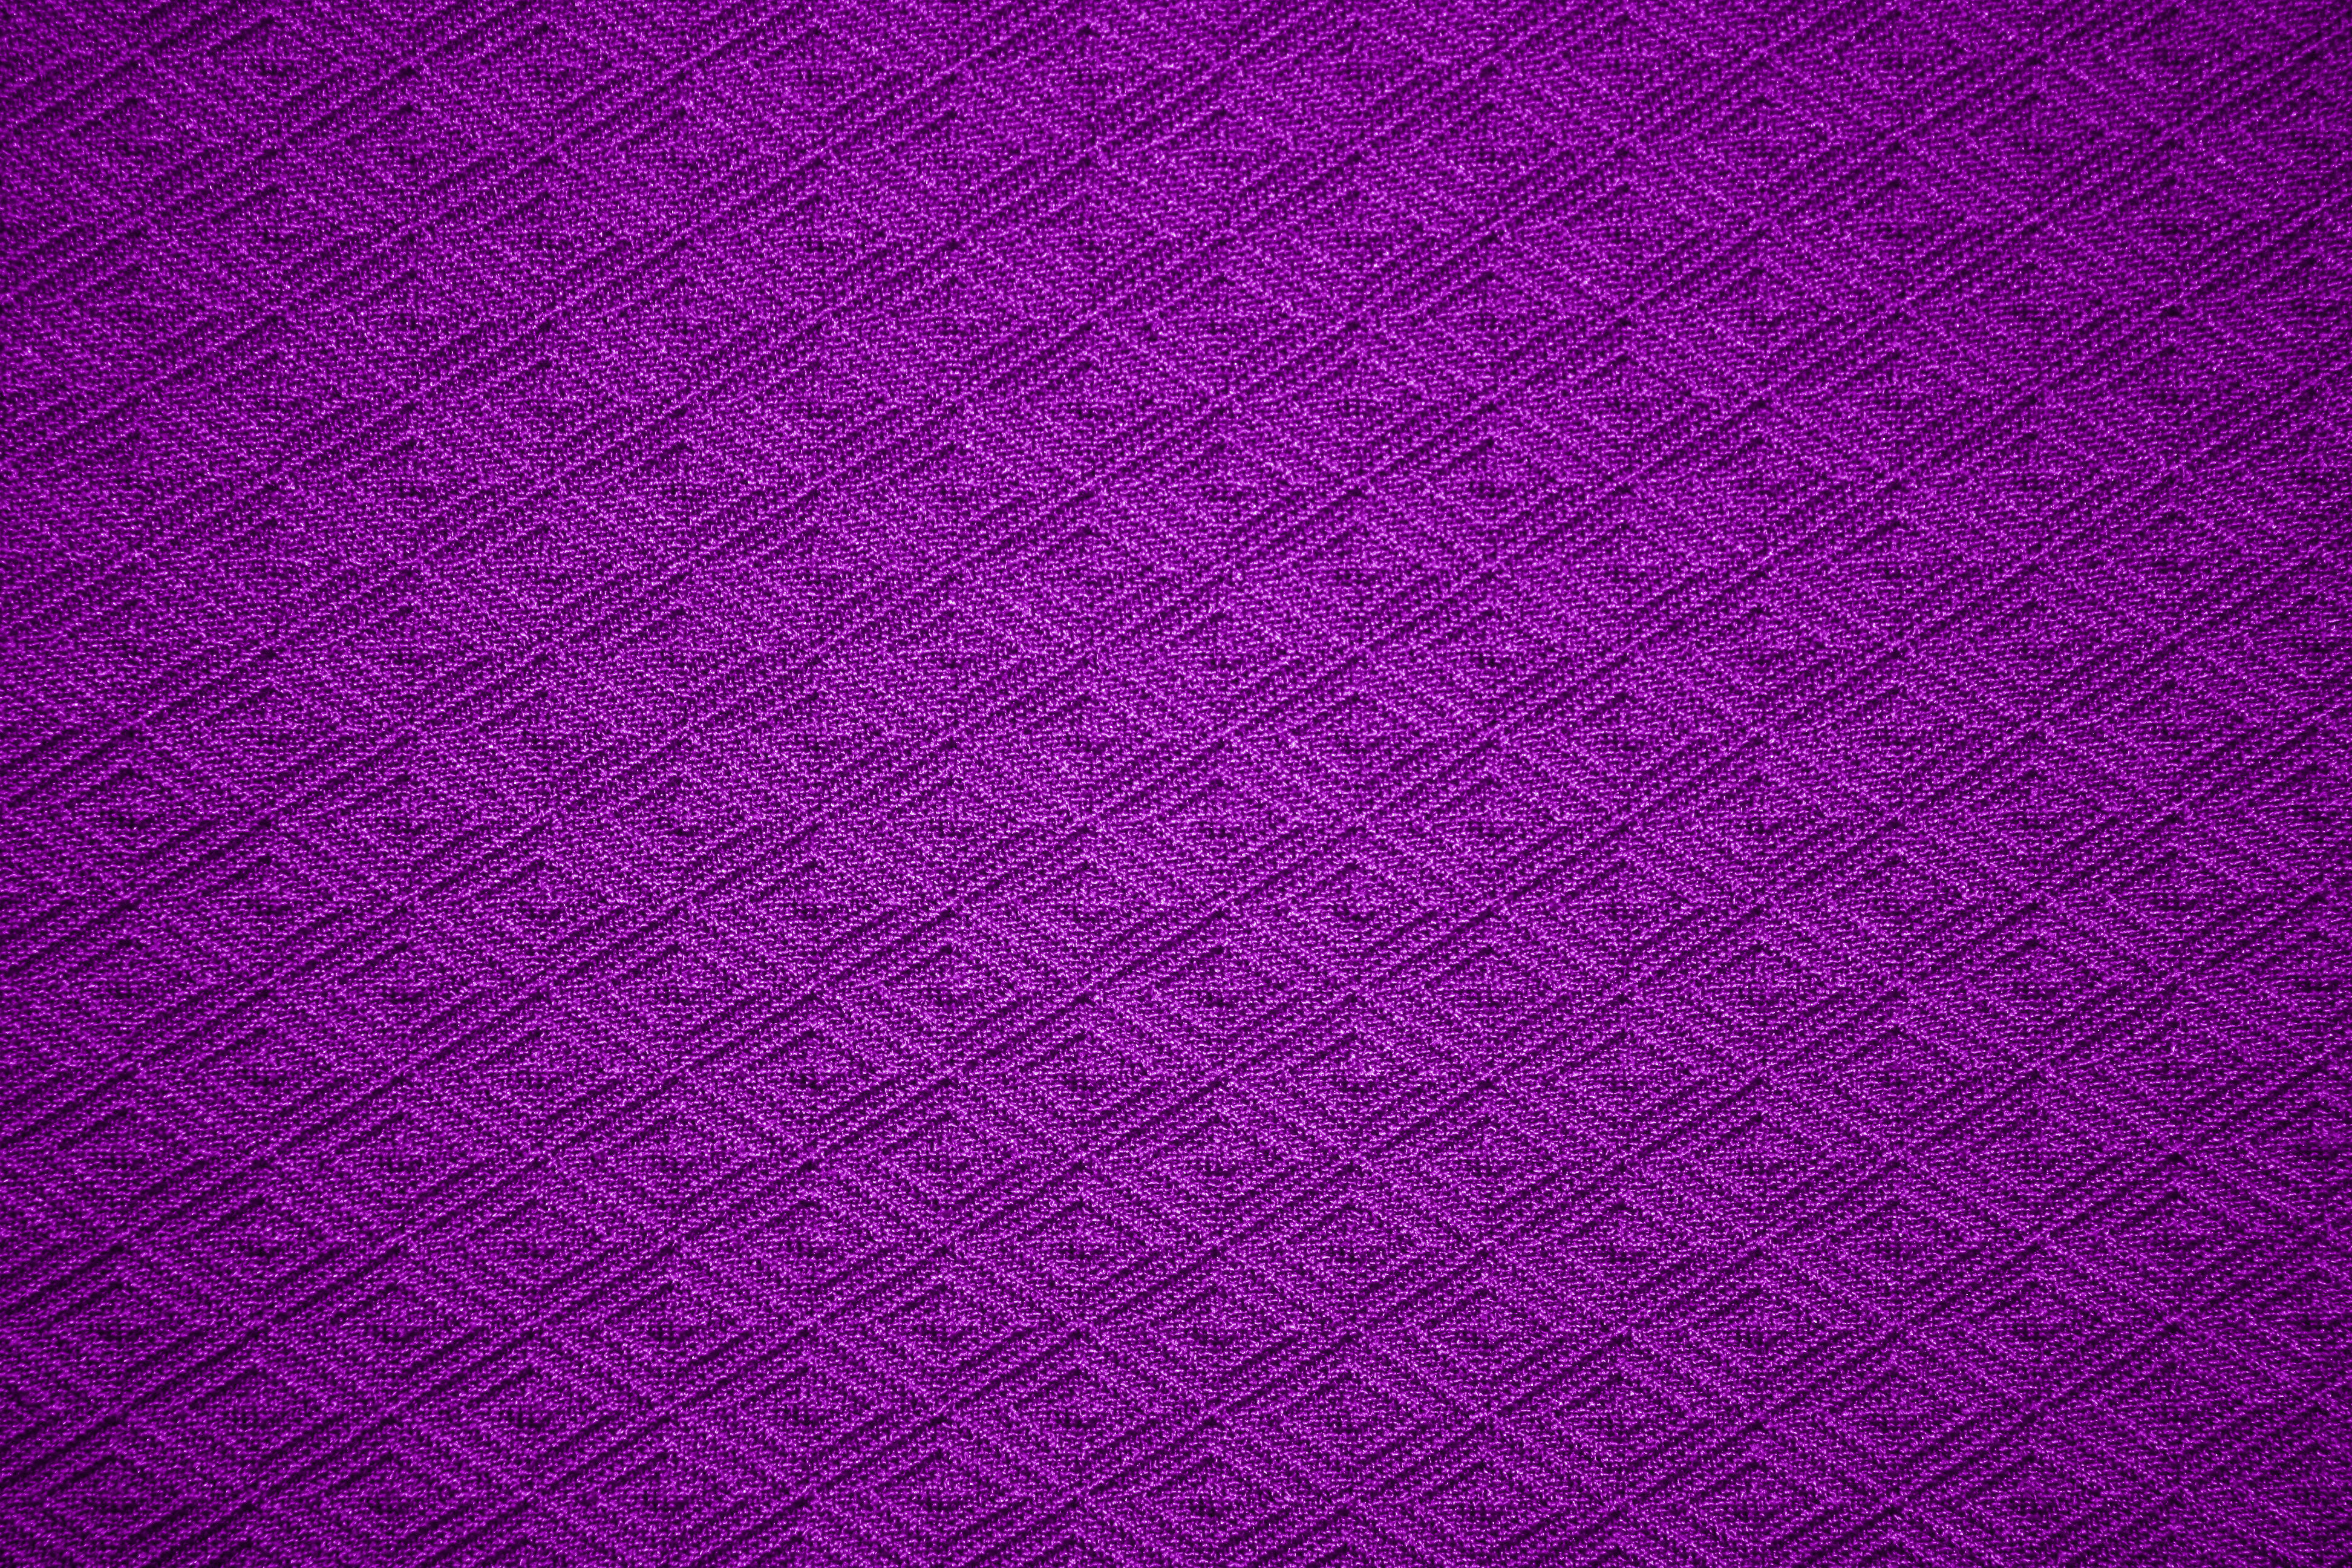 Deep Purple Knit Fabric With Diamond Pattern Texture